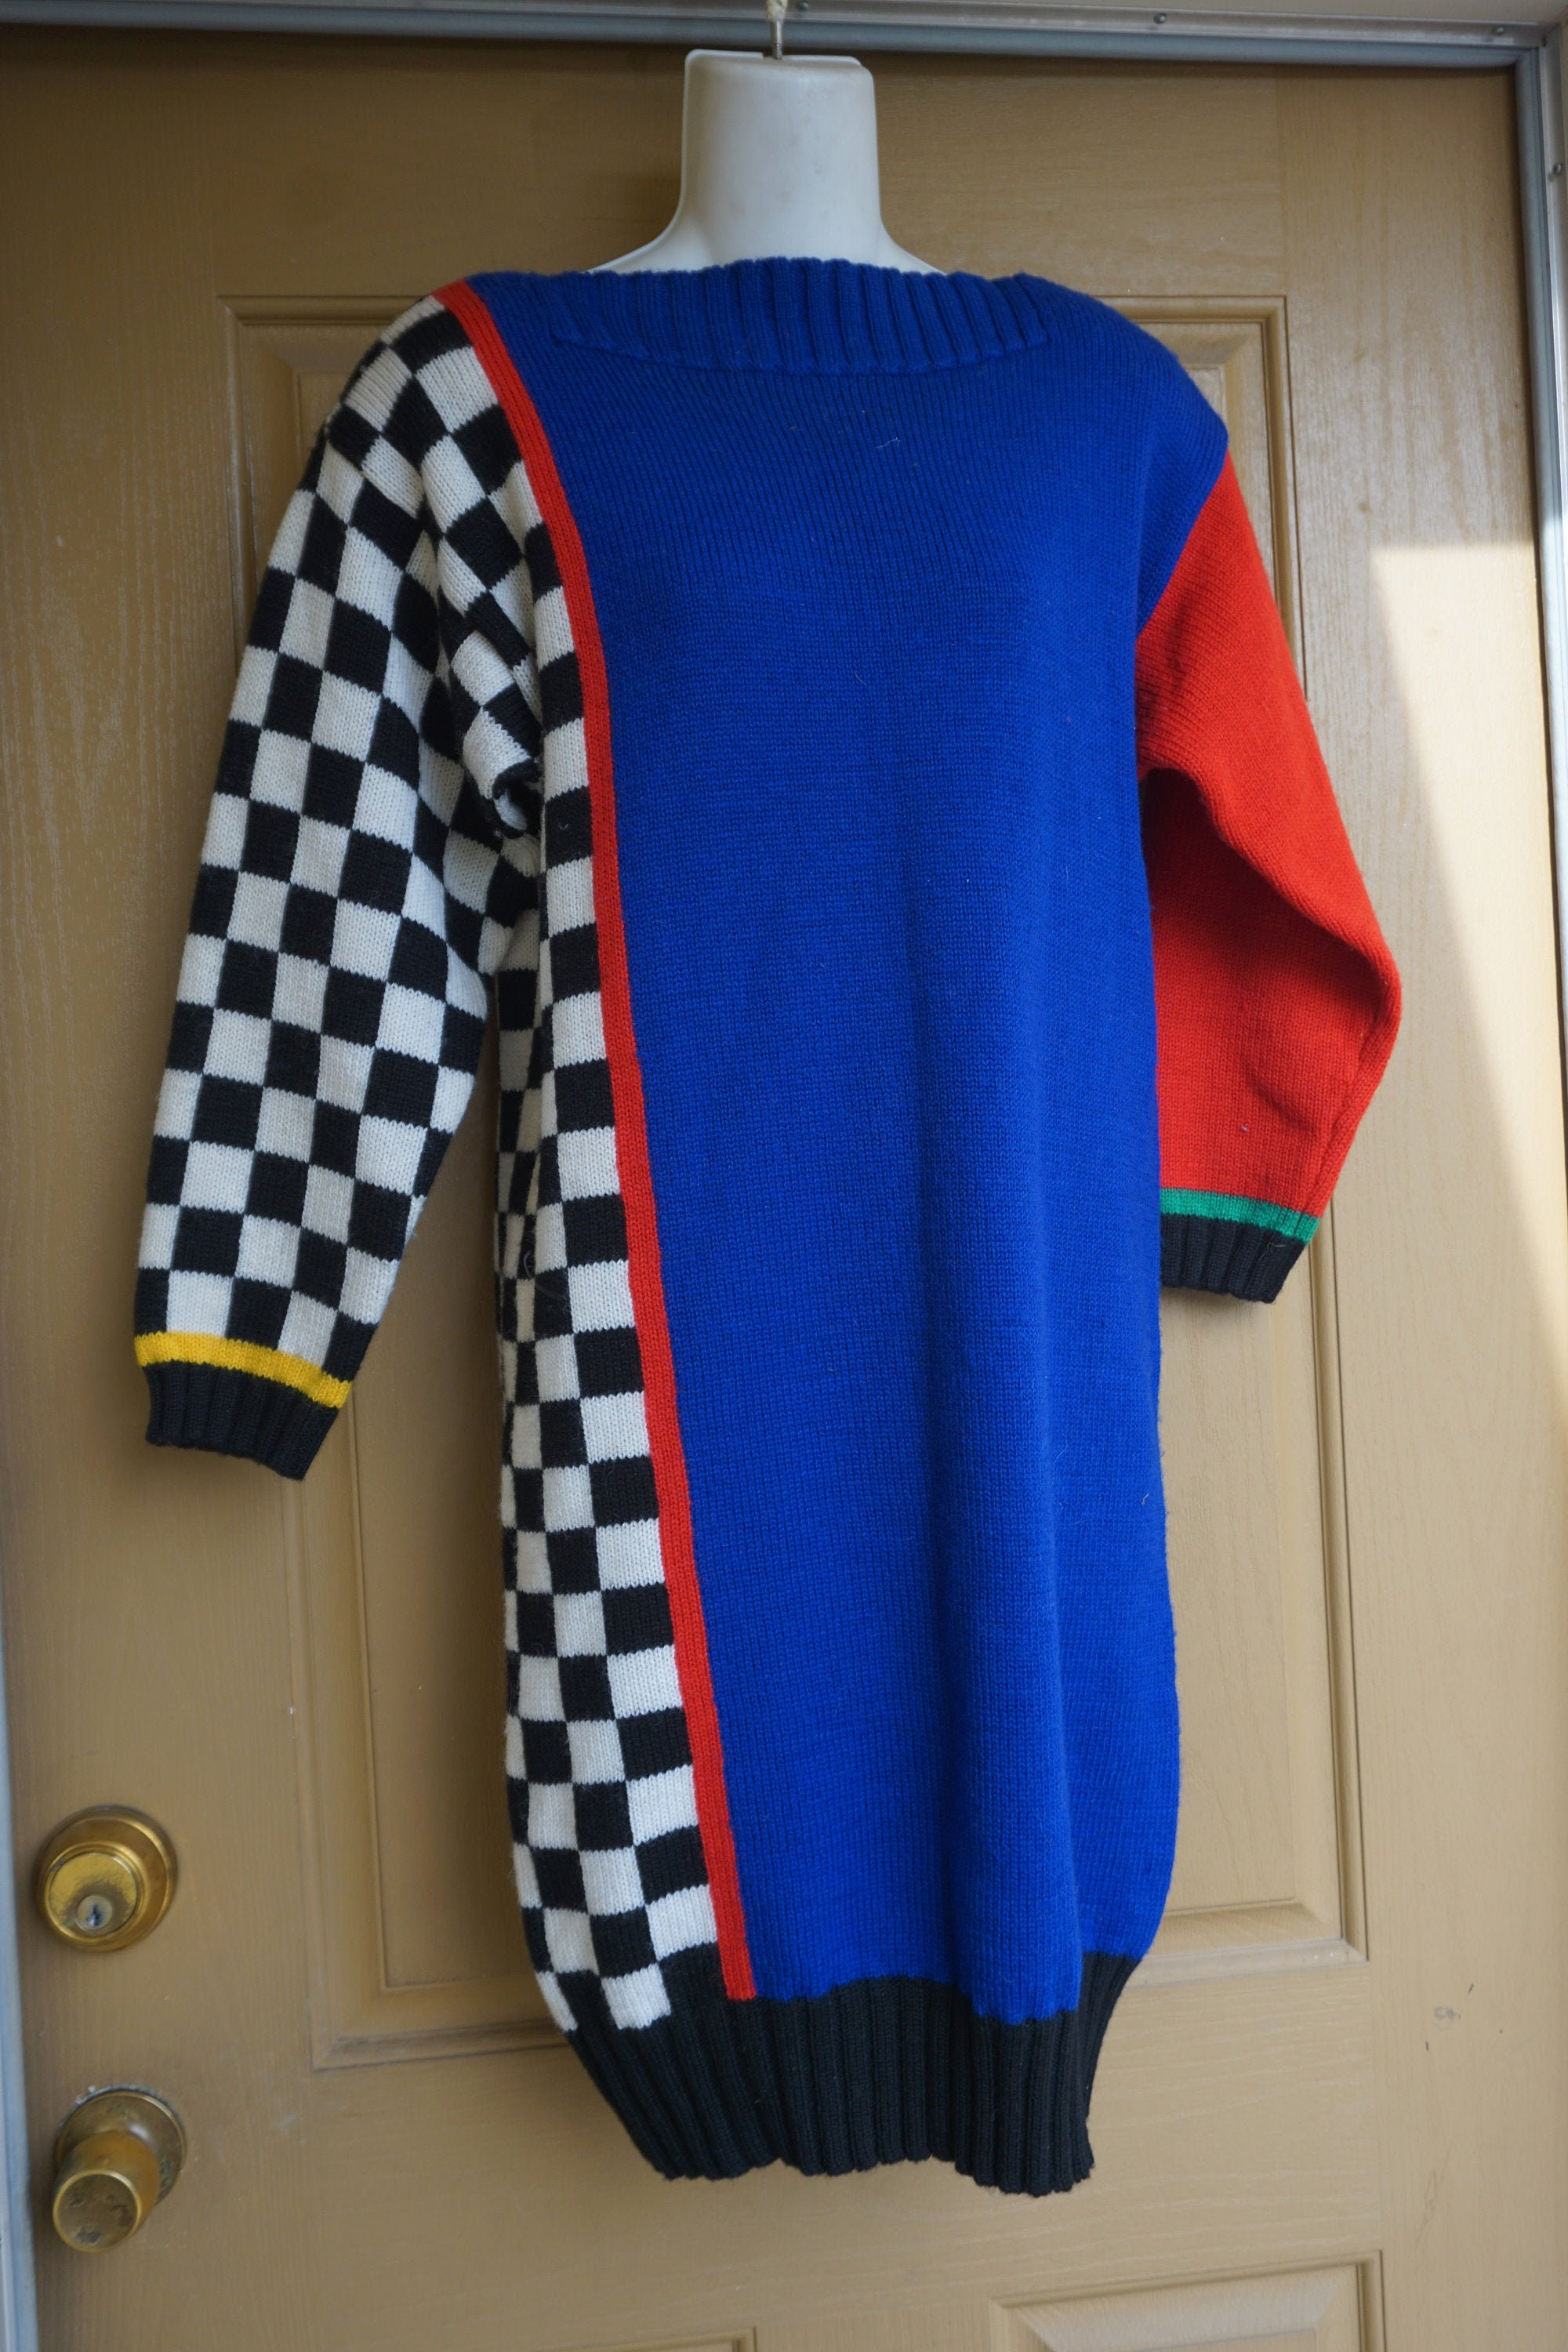 80s Dresses | Casual to Party Dresses Vintage 1980S Sweater Dress Heavy Knit Sweater With Large Shoulder Pads  Long Sleeves By Outlander $0.00 AT vintagedancer.com